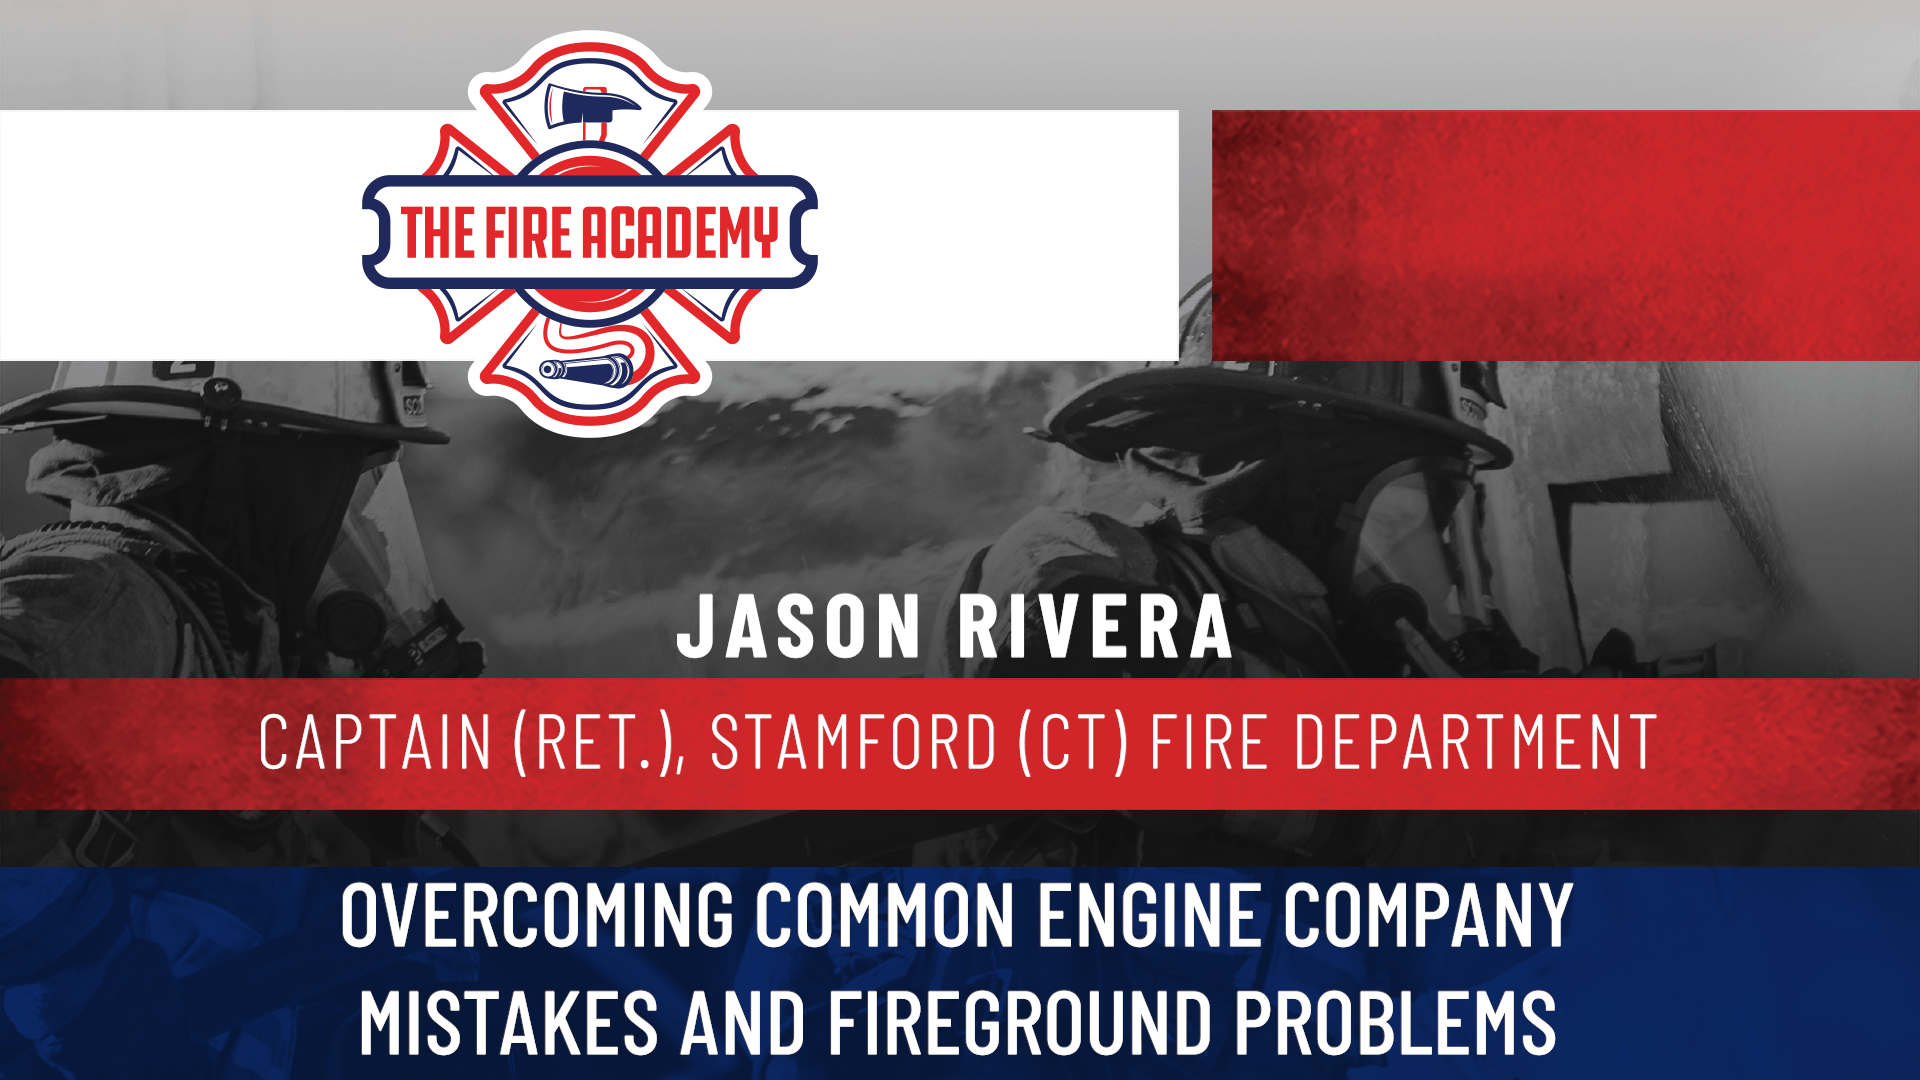 Overcoming Common Engine Company Mistakes and Fireground Problems